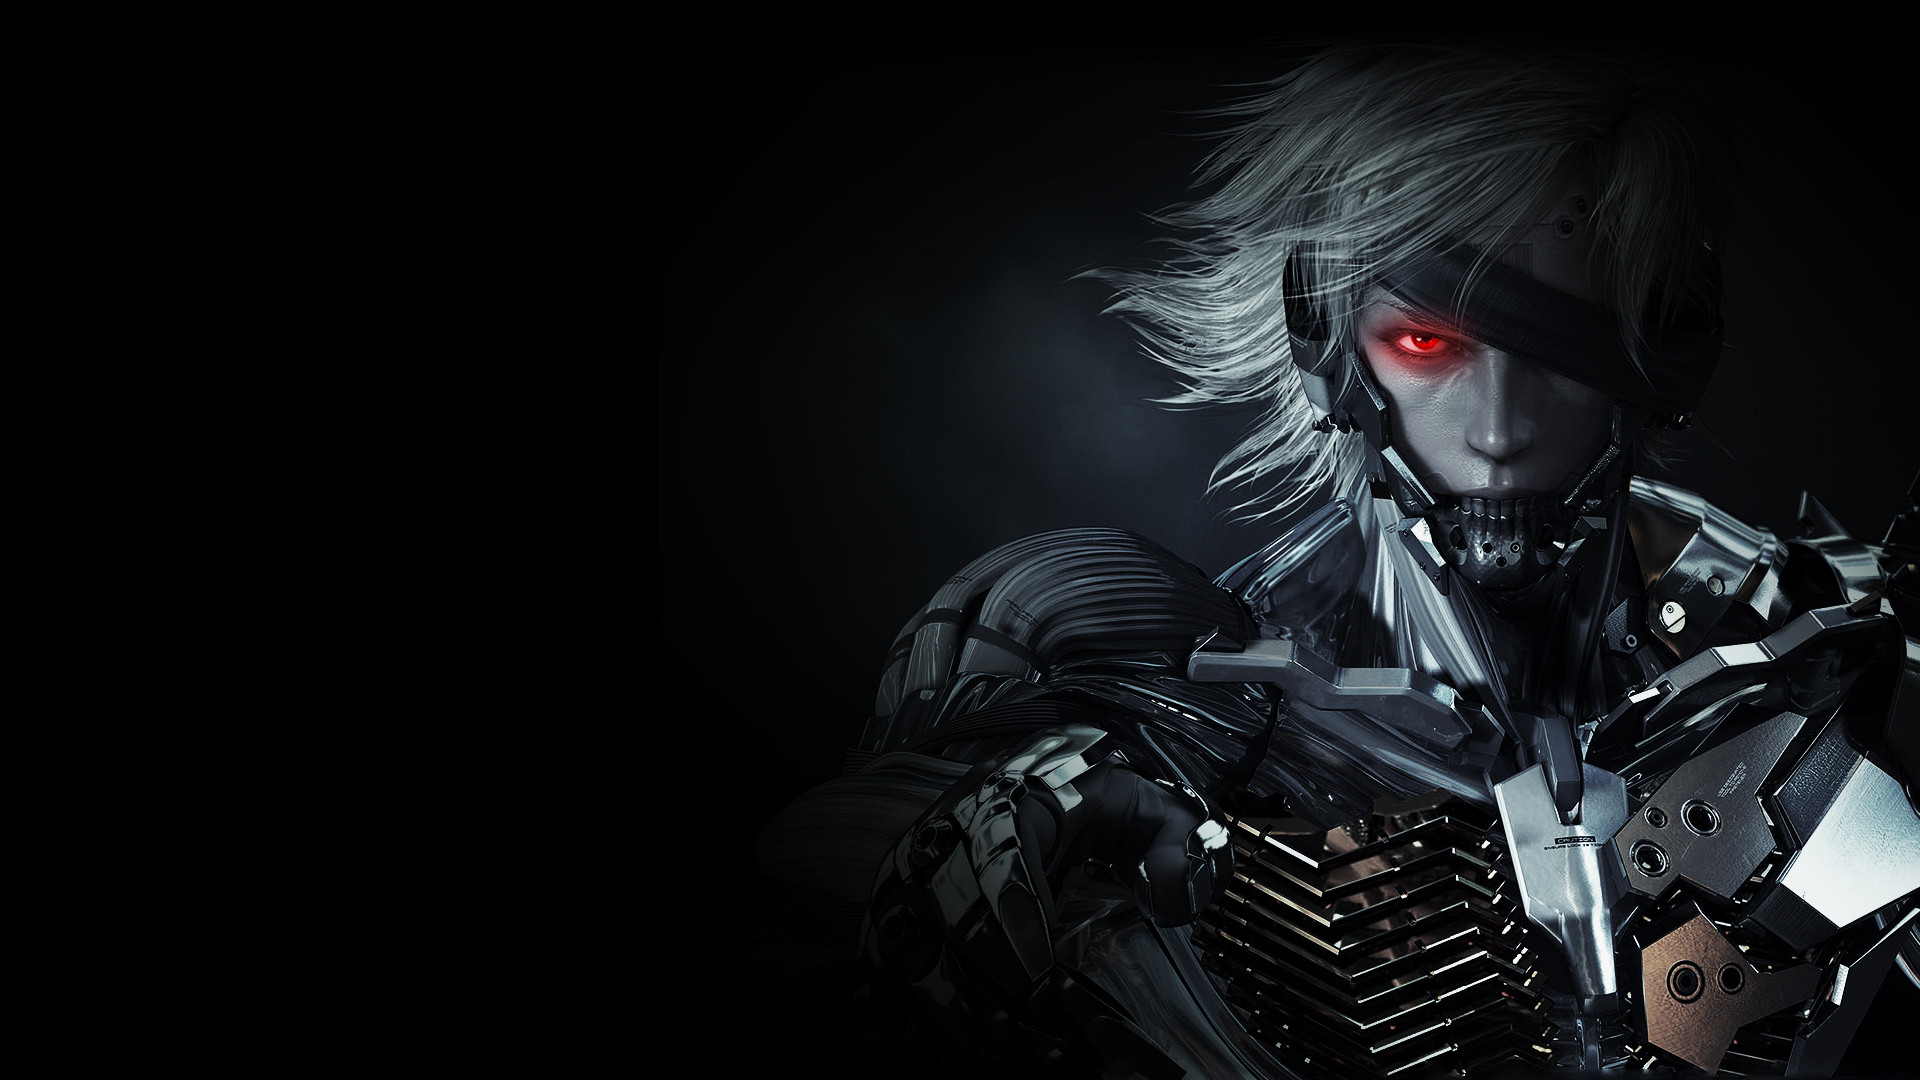 1920x1080 Metal Gear Solid Wallpaper 2996